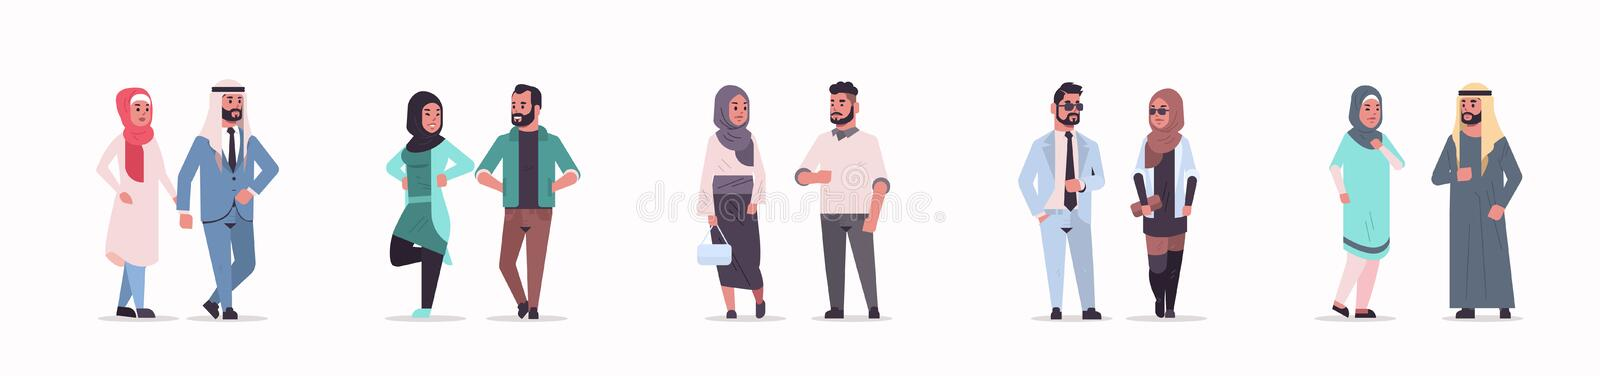 Different arabic business couple standing together arab man woman wearing traditional clothes arabian cartoon characters vector illustration